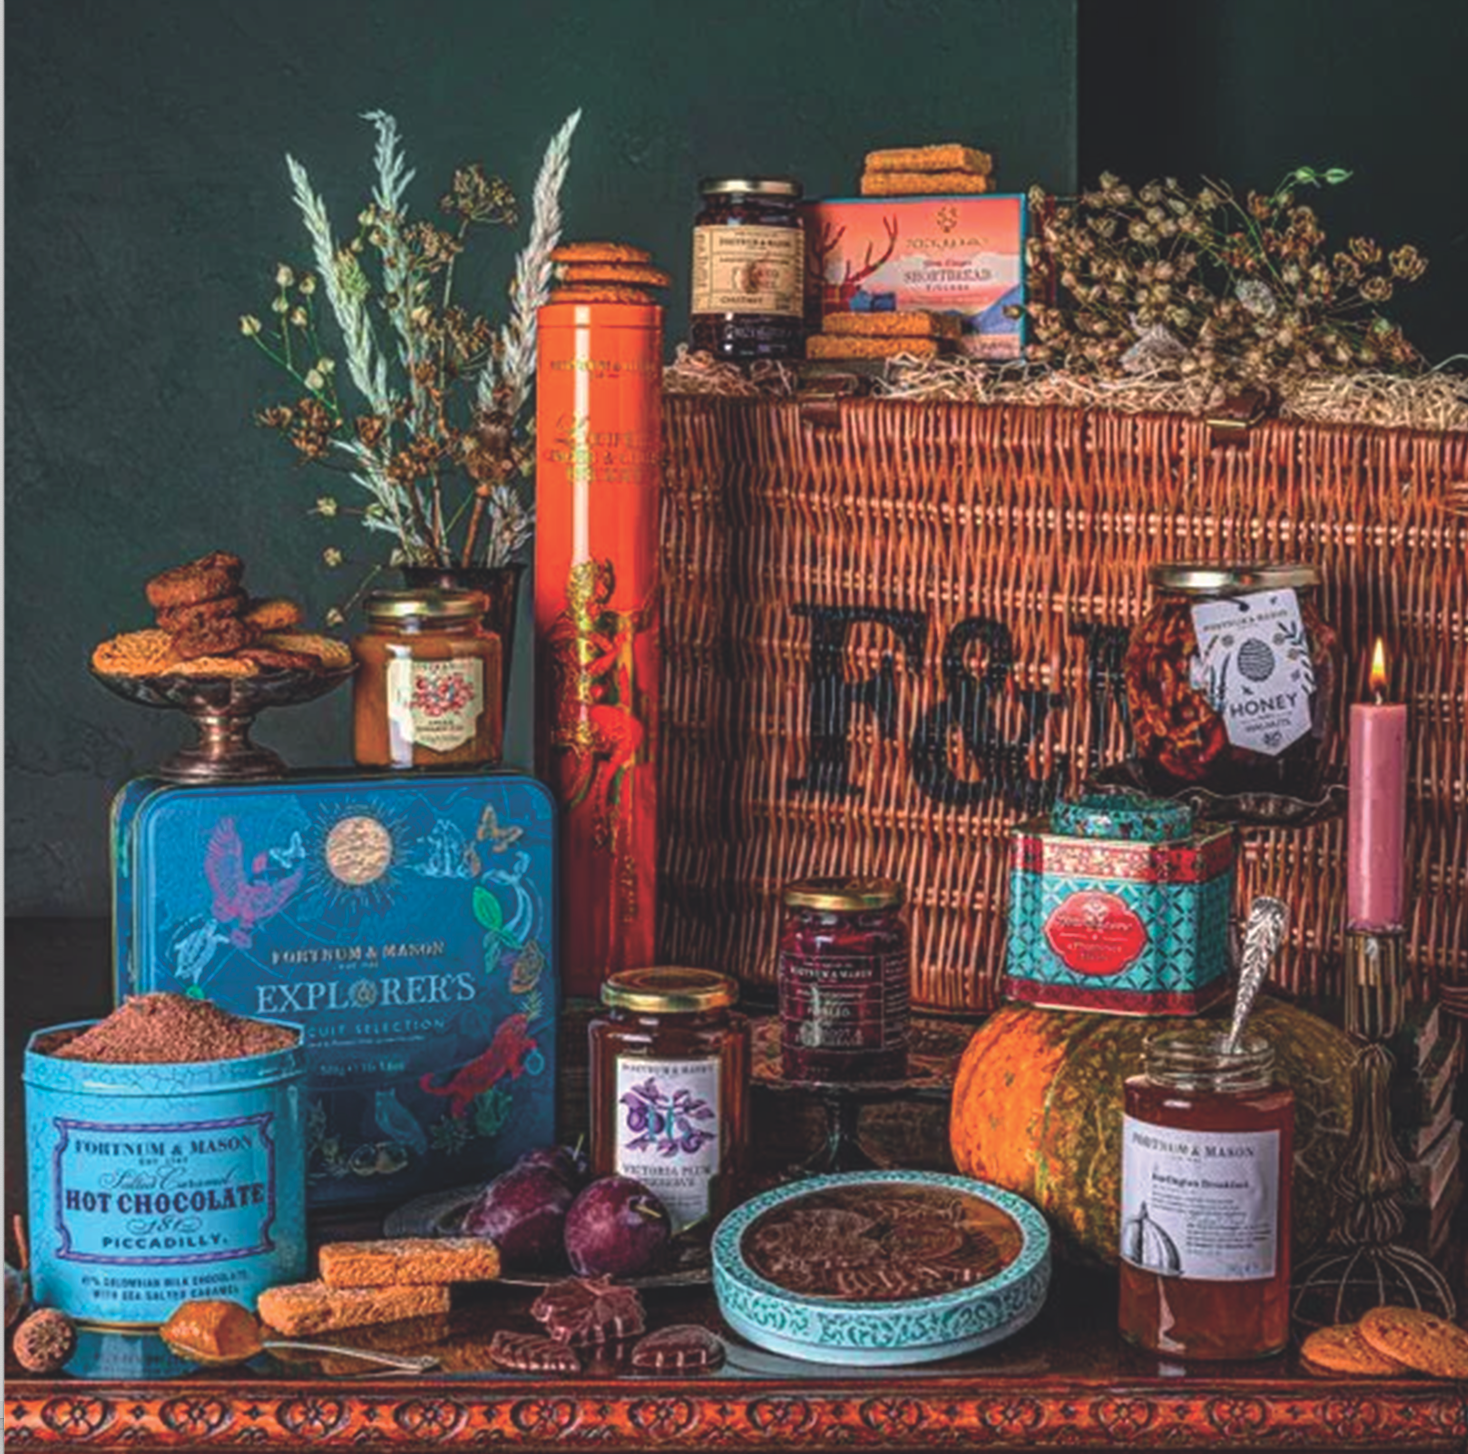 Above: The Autumnal F&M hamper is an option for retailers opting for a 14m display by end of December.